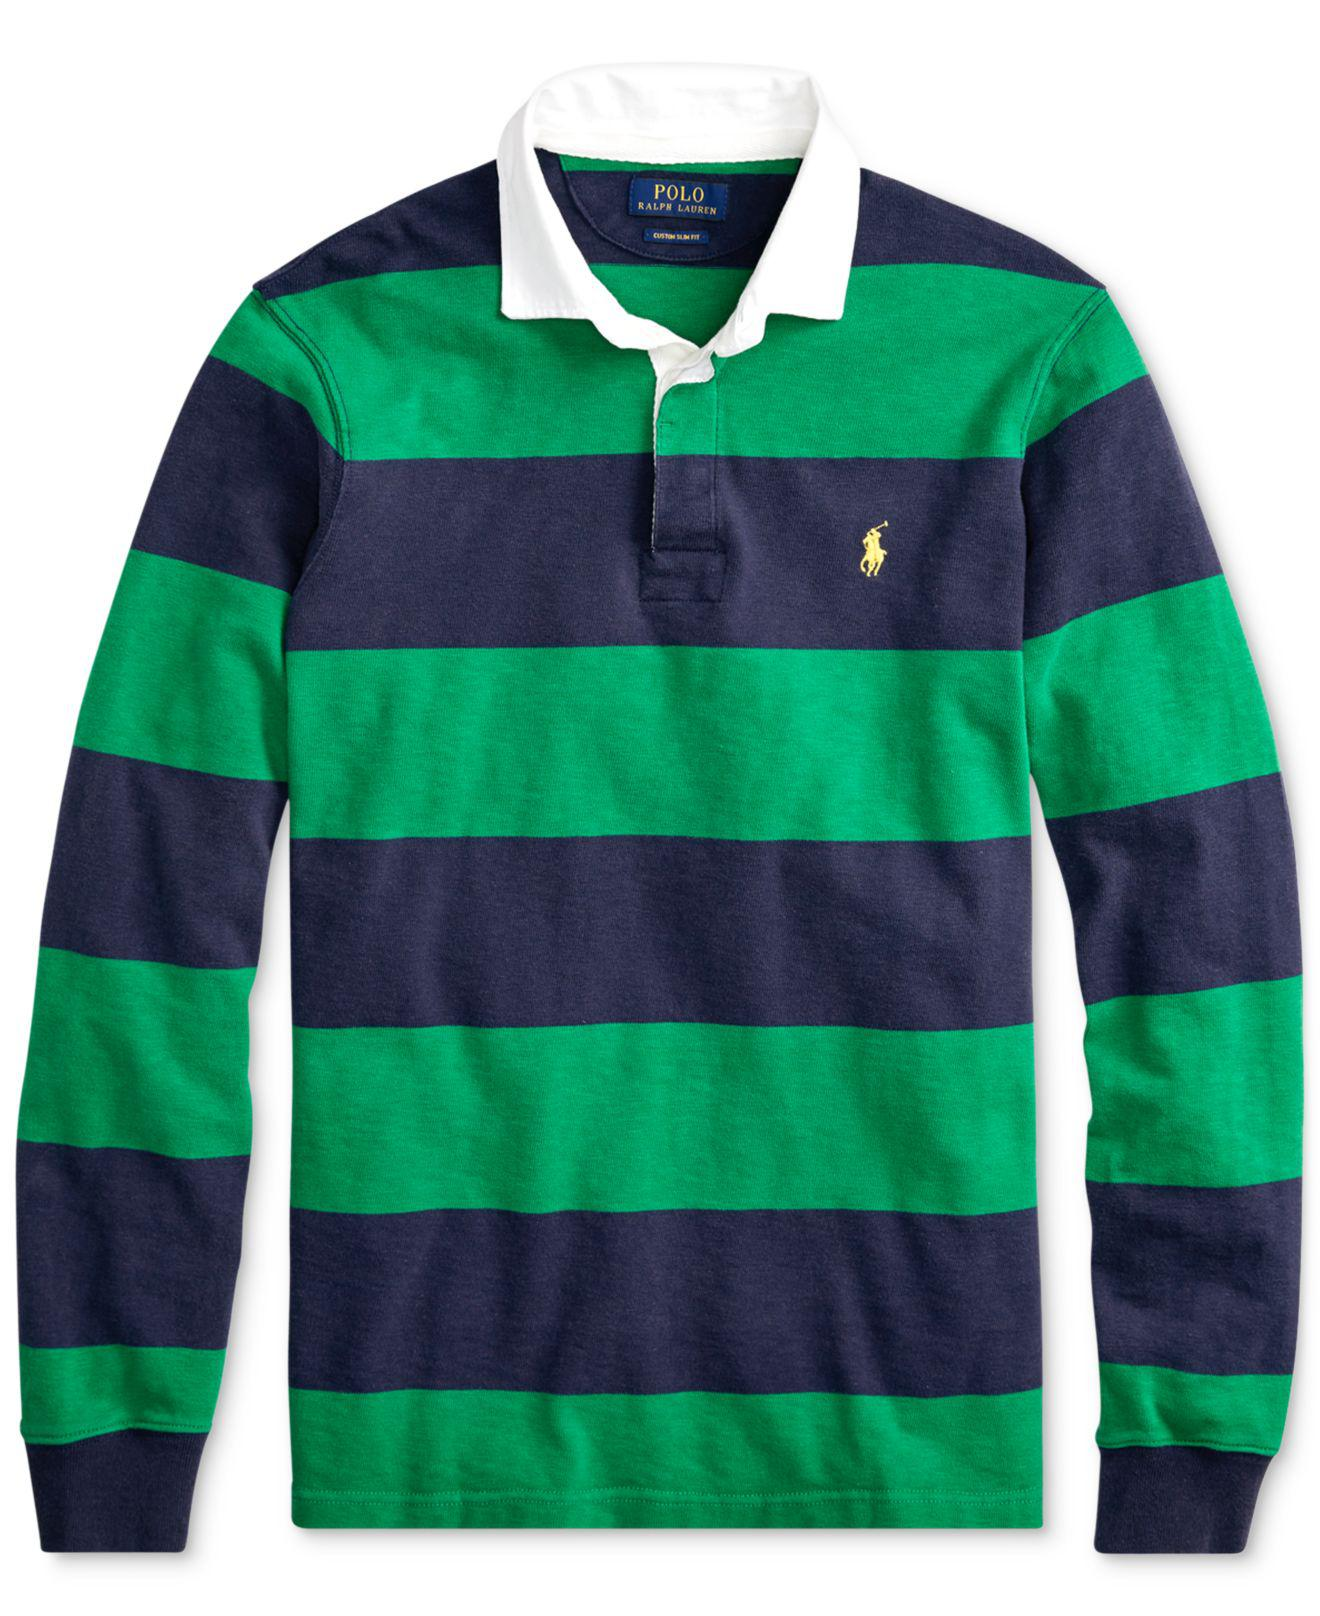 06e6f0532 ... new zealand lyst polo ralph lauren iconic striped rugby polo shirt in  green 69e82 b32f1